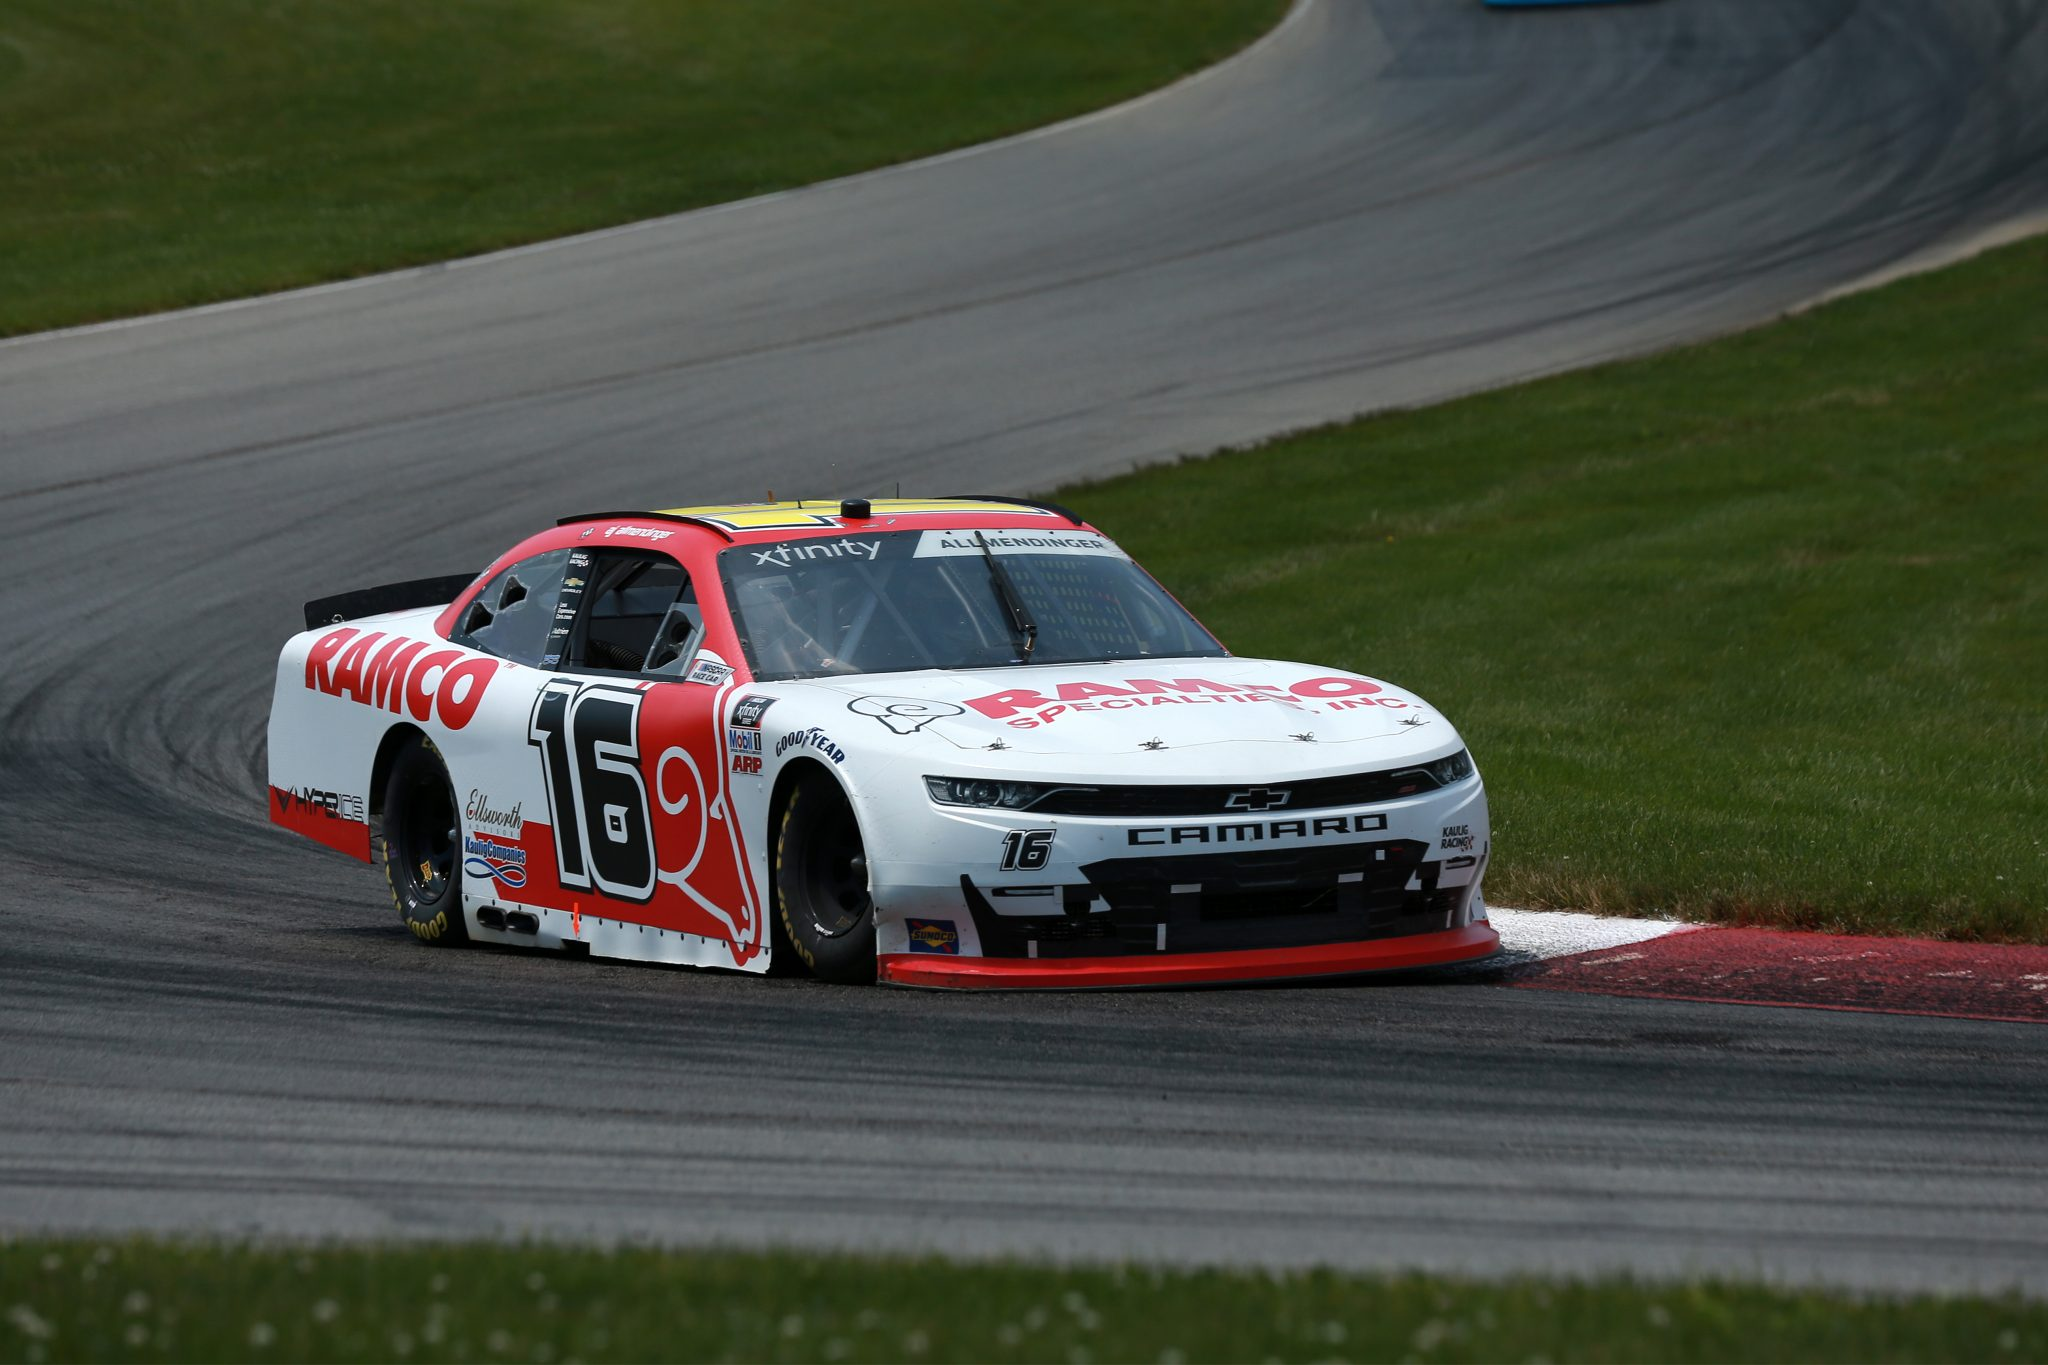 LEXINGTON, OHIO - JUNE 05: AJ Allmendinger, driver of the #16 RAMCO Specialties Inc Chevrolet, drives during the NASCAR Xfinity Series B&L Transport 170 at Mid-Ohio Sports Car Course on June 05, 2021 in Lexington, Ohio. (Photo by Sean Gardner/Getty Images) | Getty Images